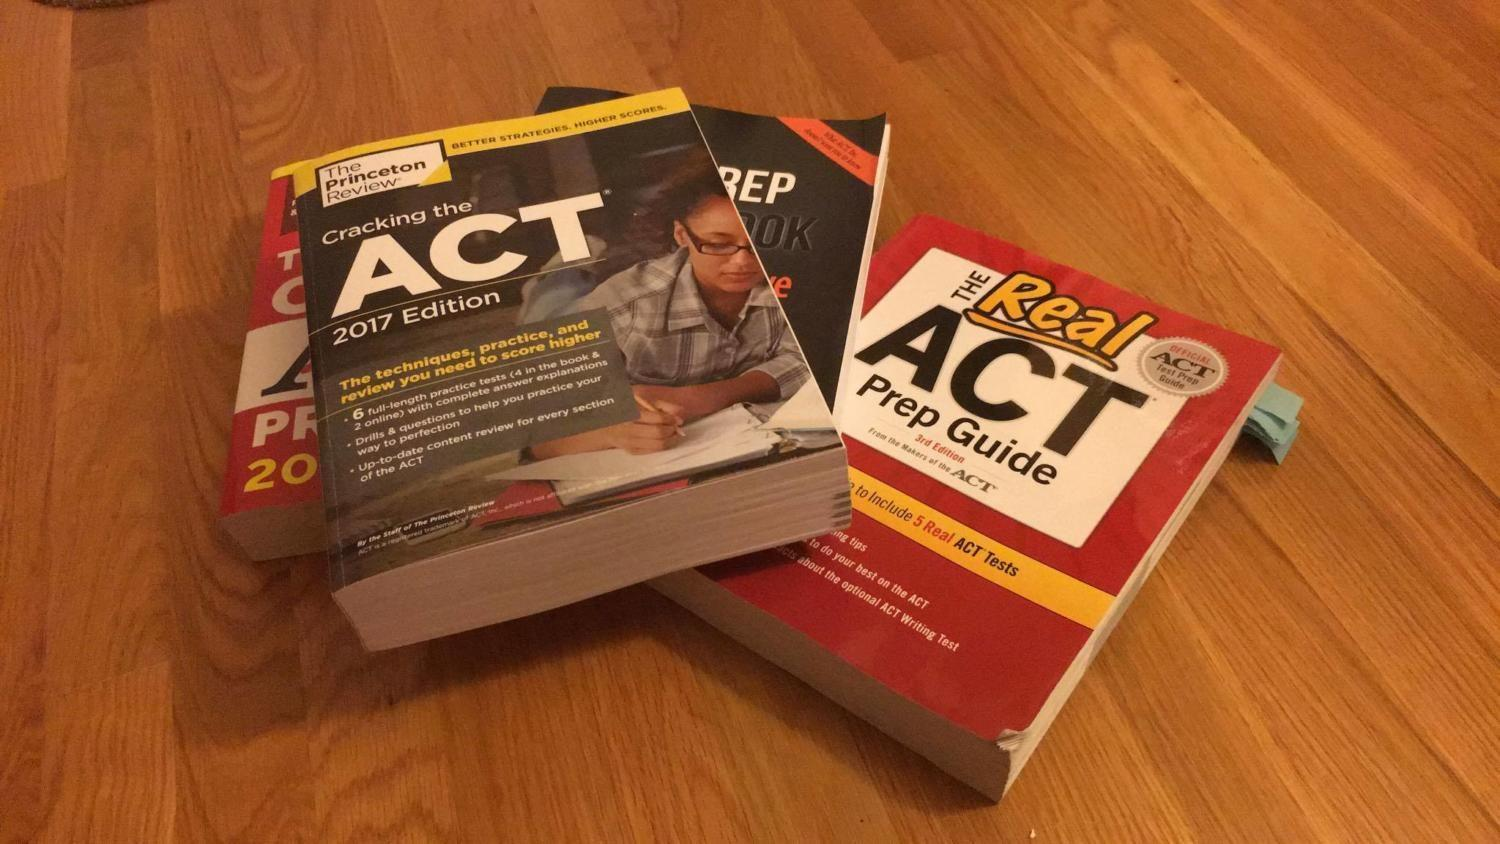 Isabel Gitten and Janani Gandhi share their two experiences with studying for the ACT.